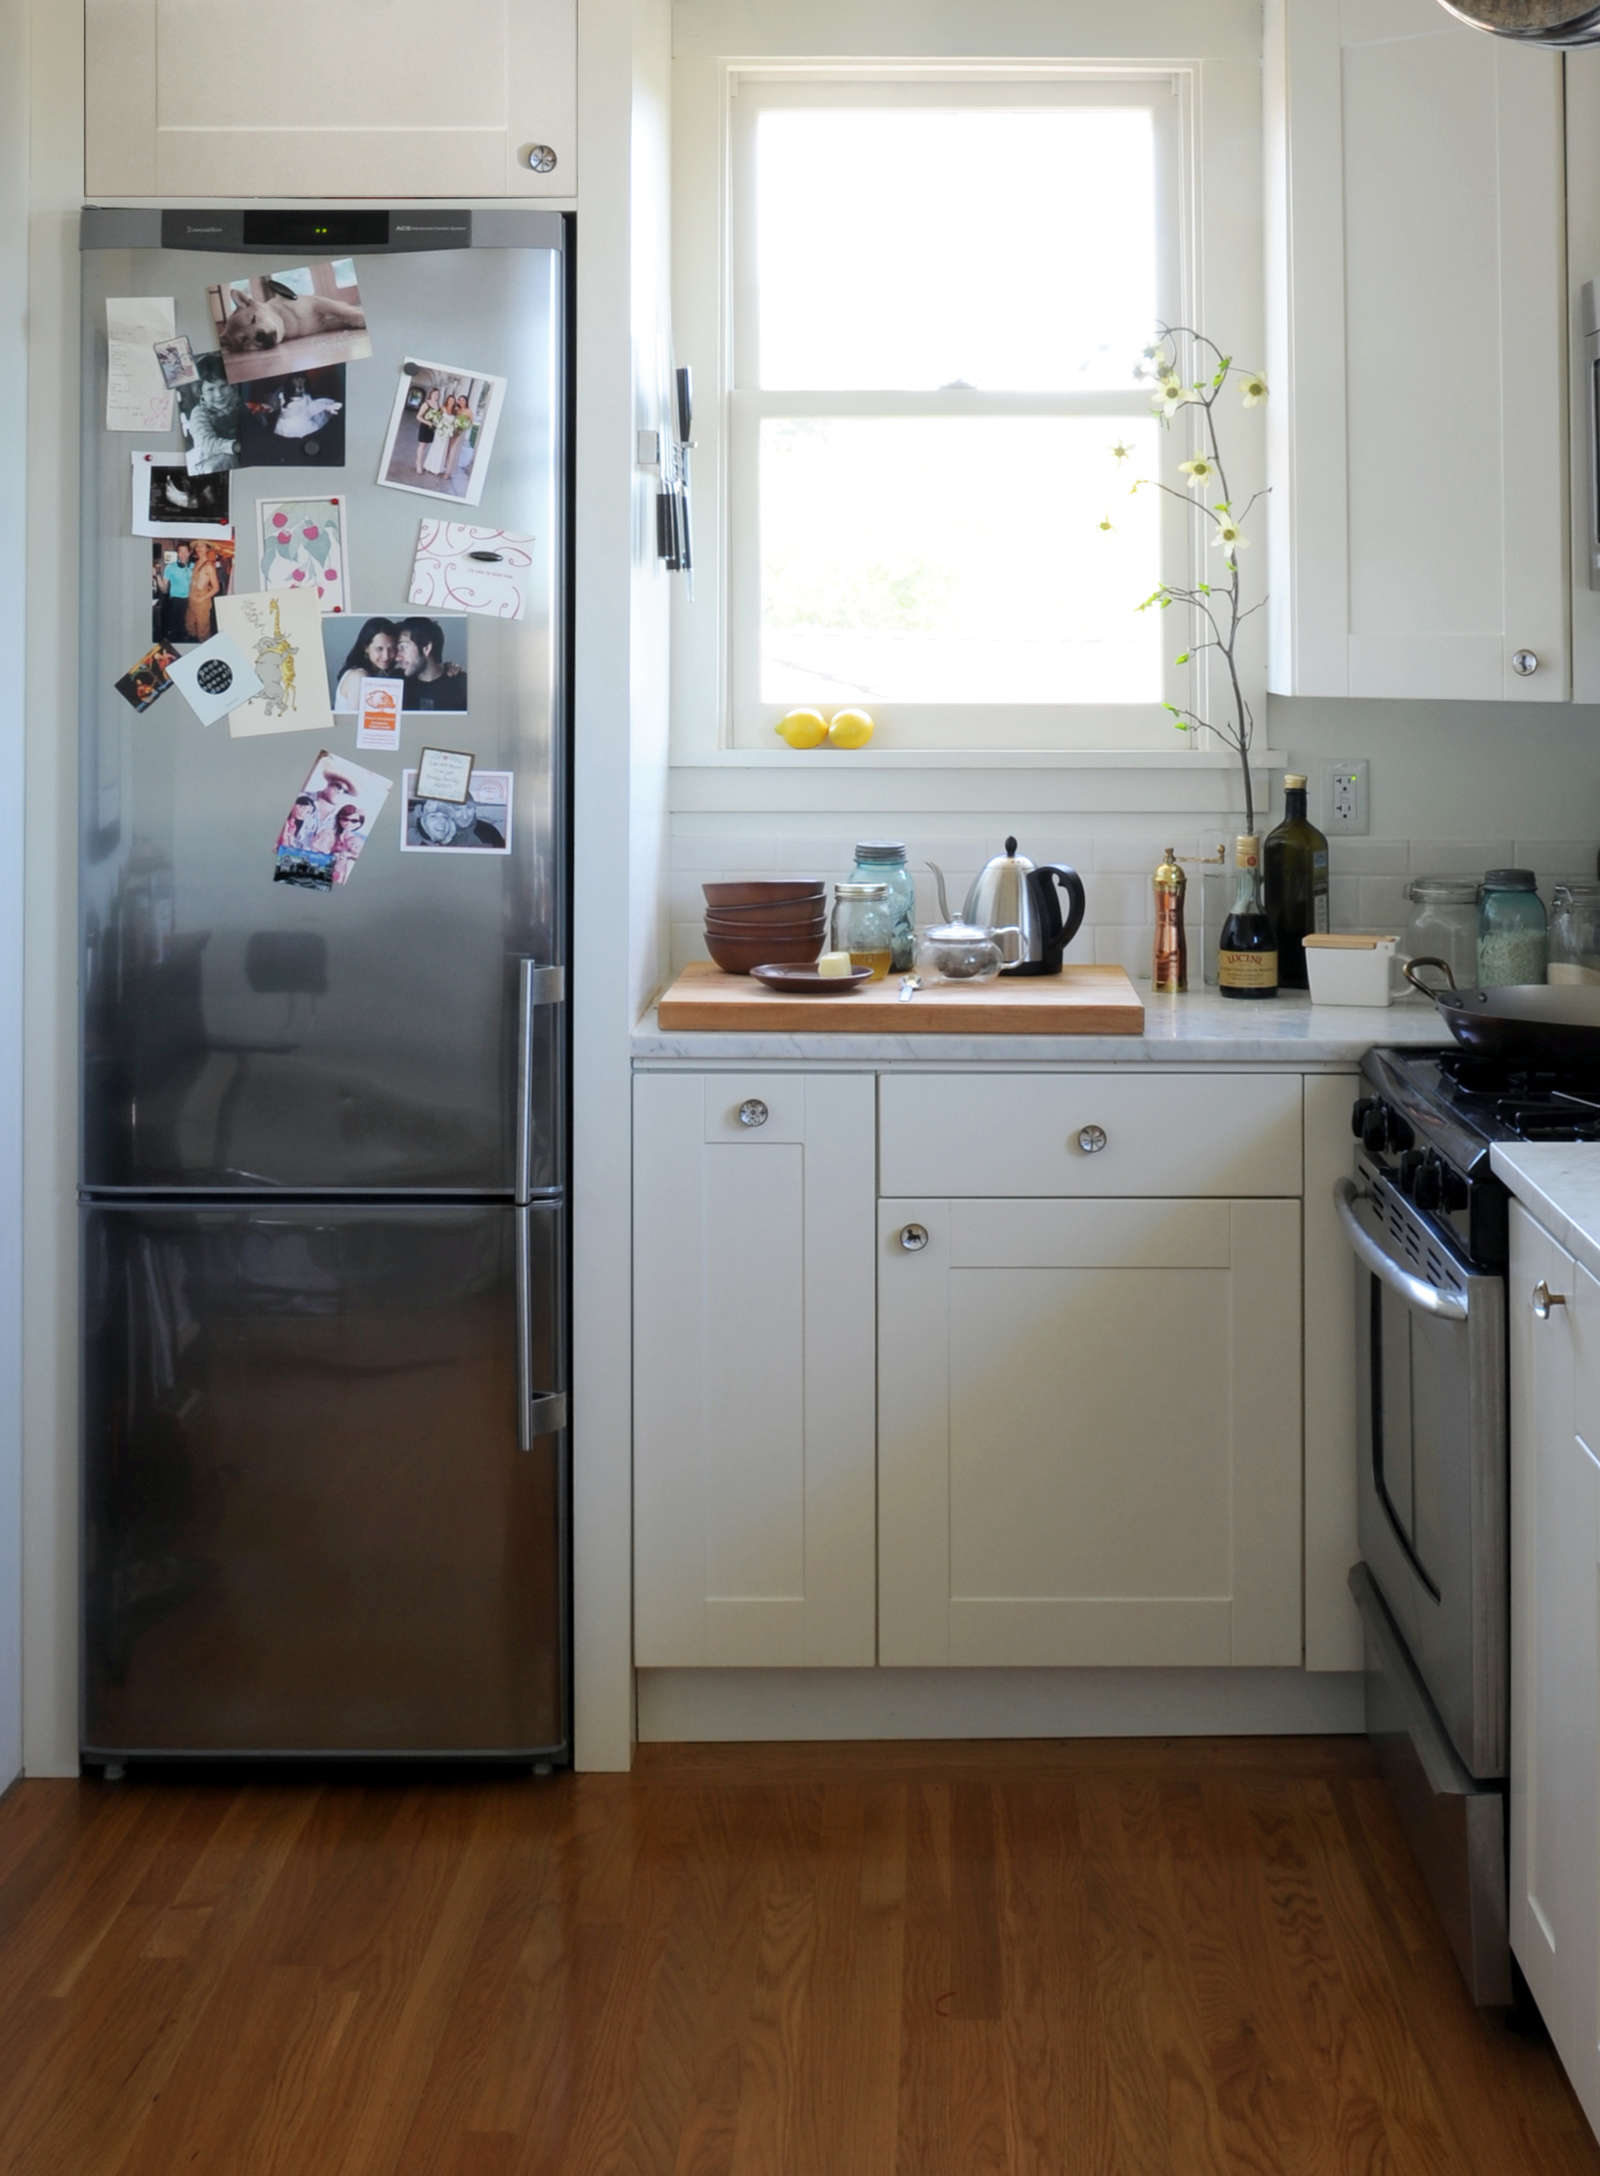 white fridge in kitchen. 10 easy pieces: best skinny refrigerators white fridge in kitchen i